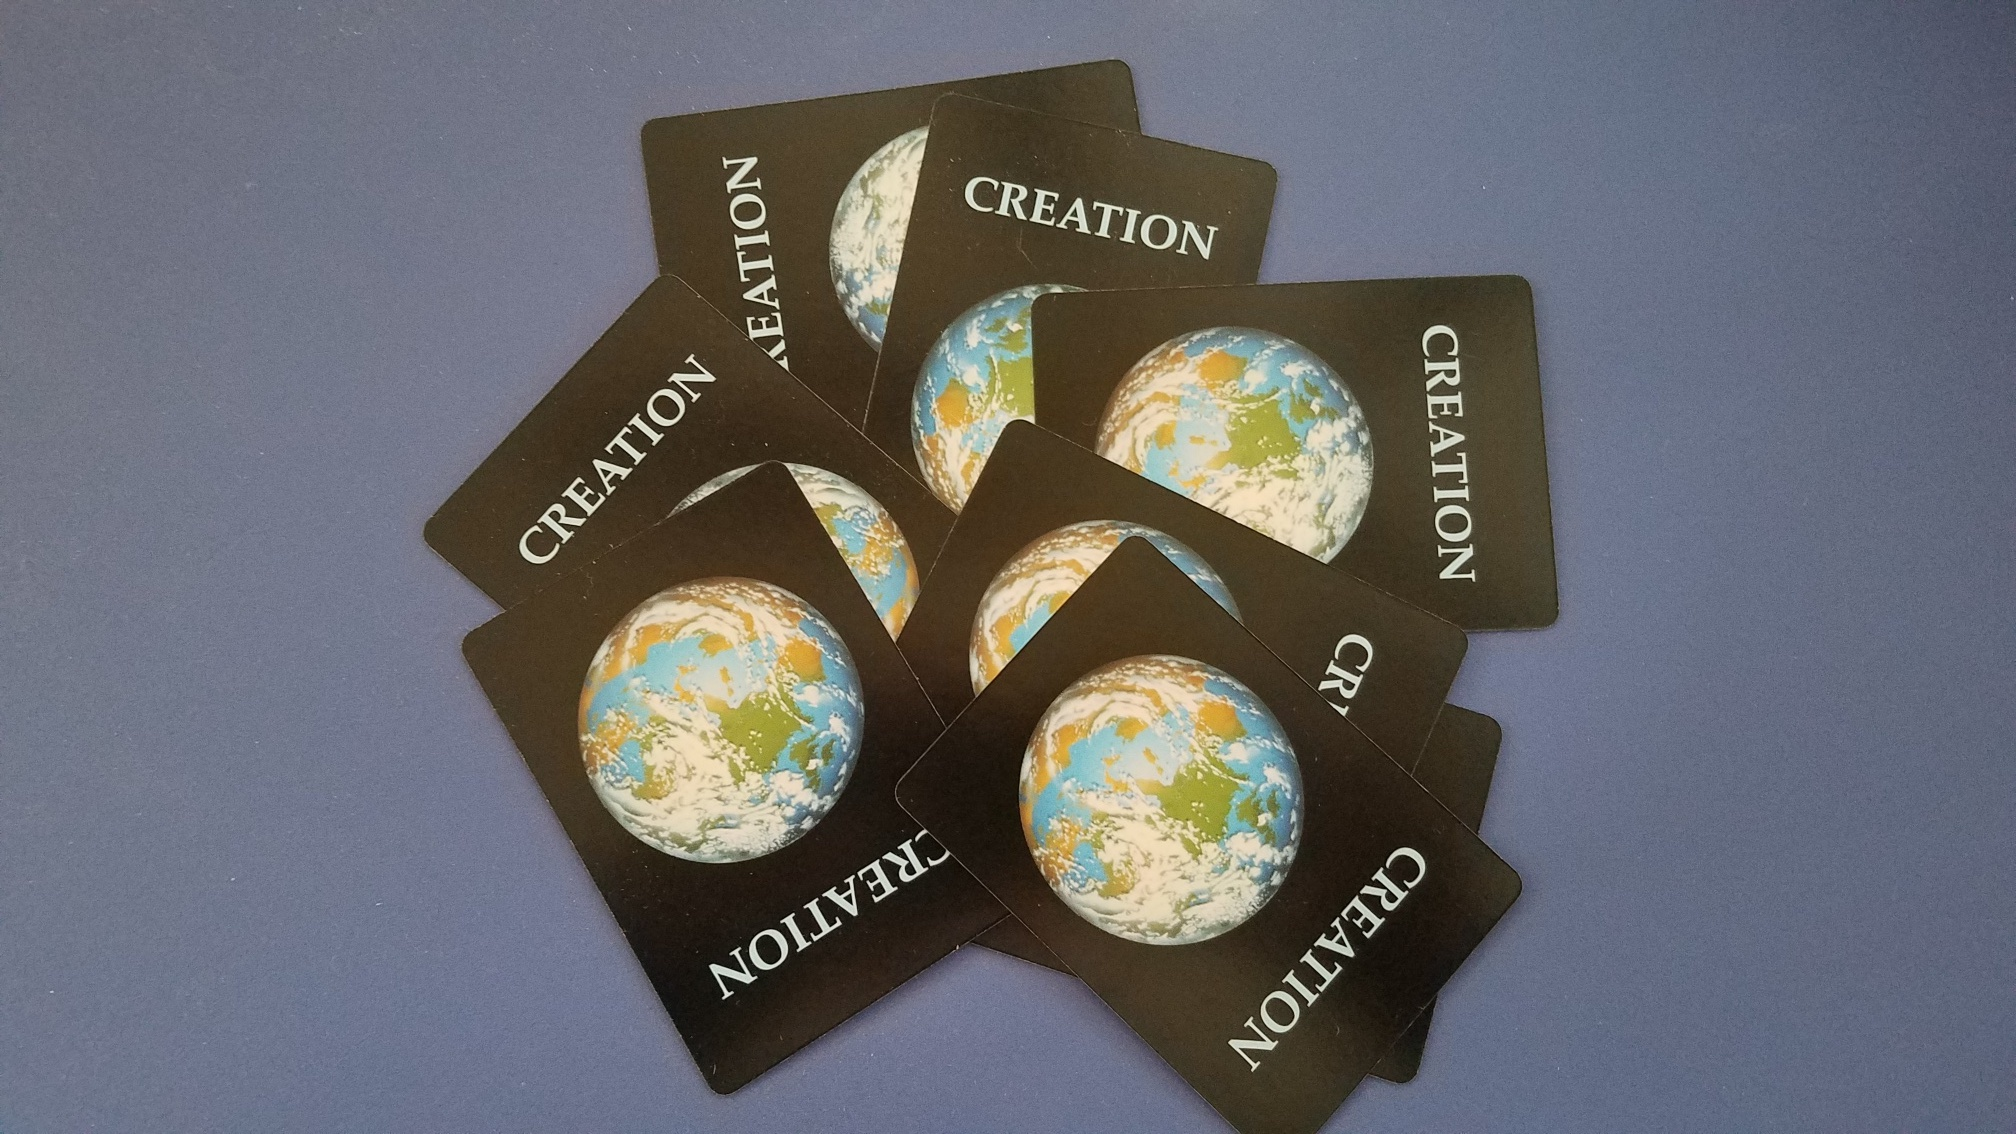 Image of card covers for Creation Card Game